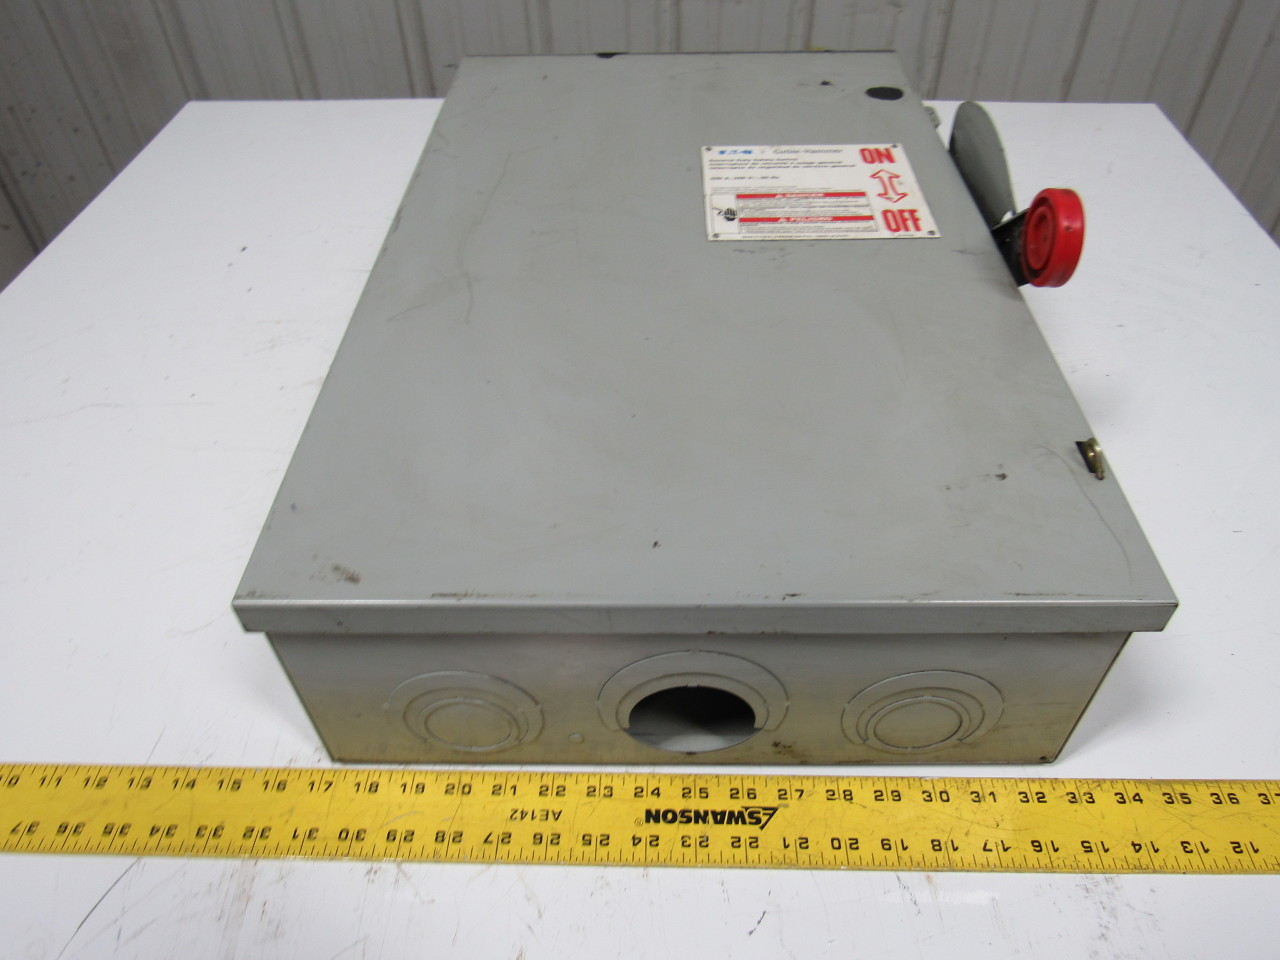 Eaton  Cutler Hammer Dg324nrk 200a 240v 4 Wire Fusible Disconnect Safety Switch